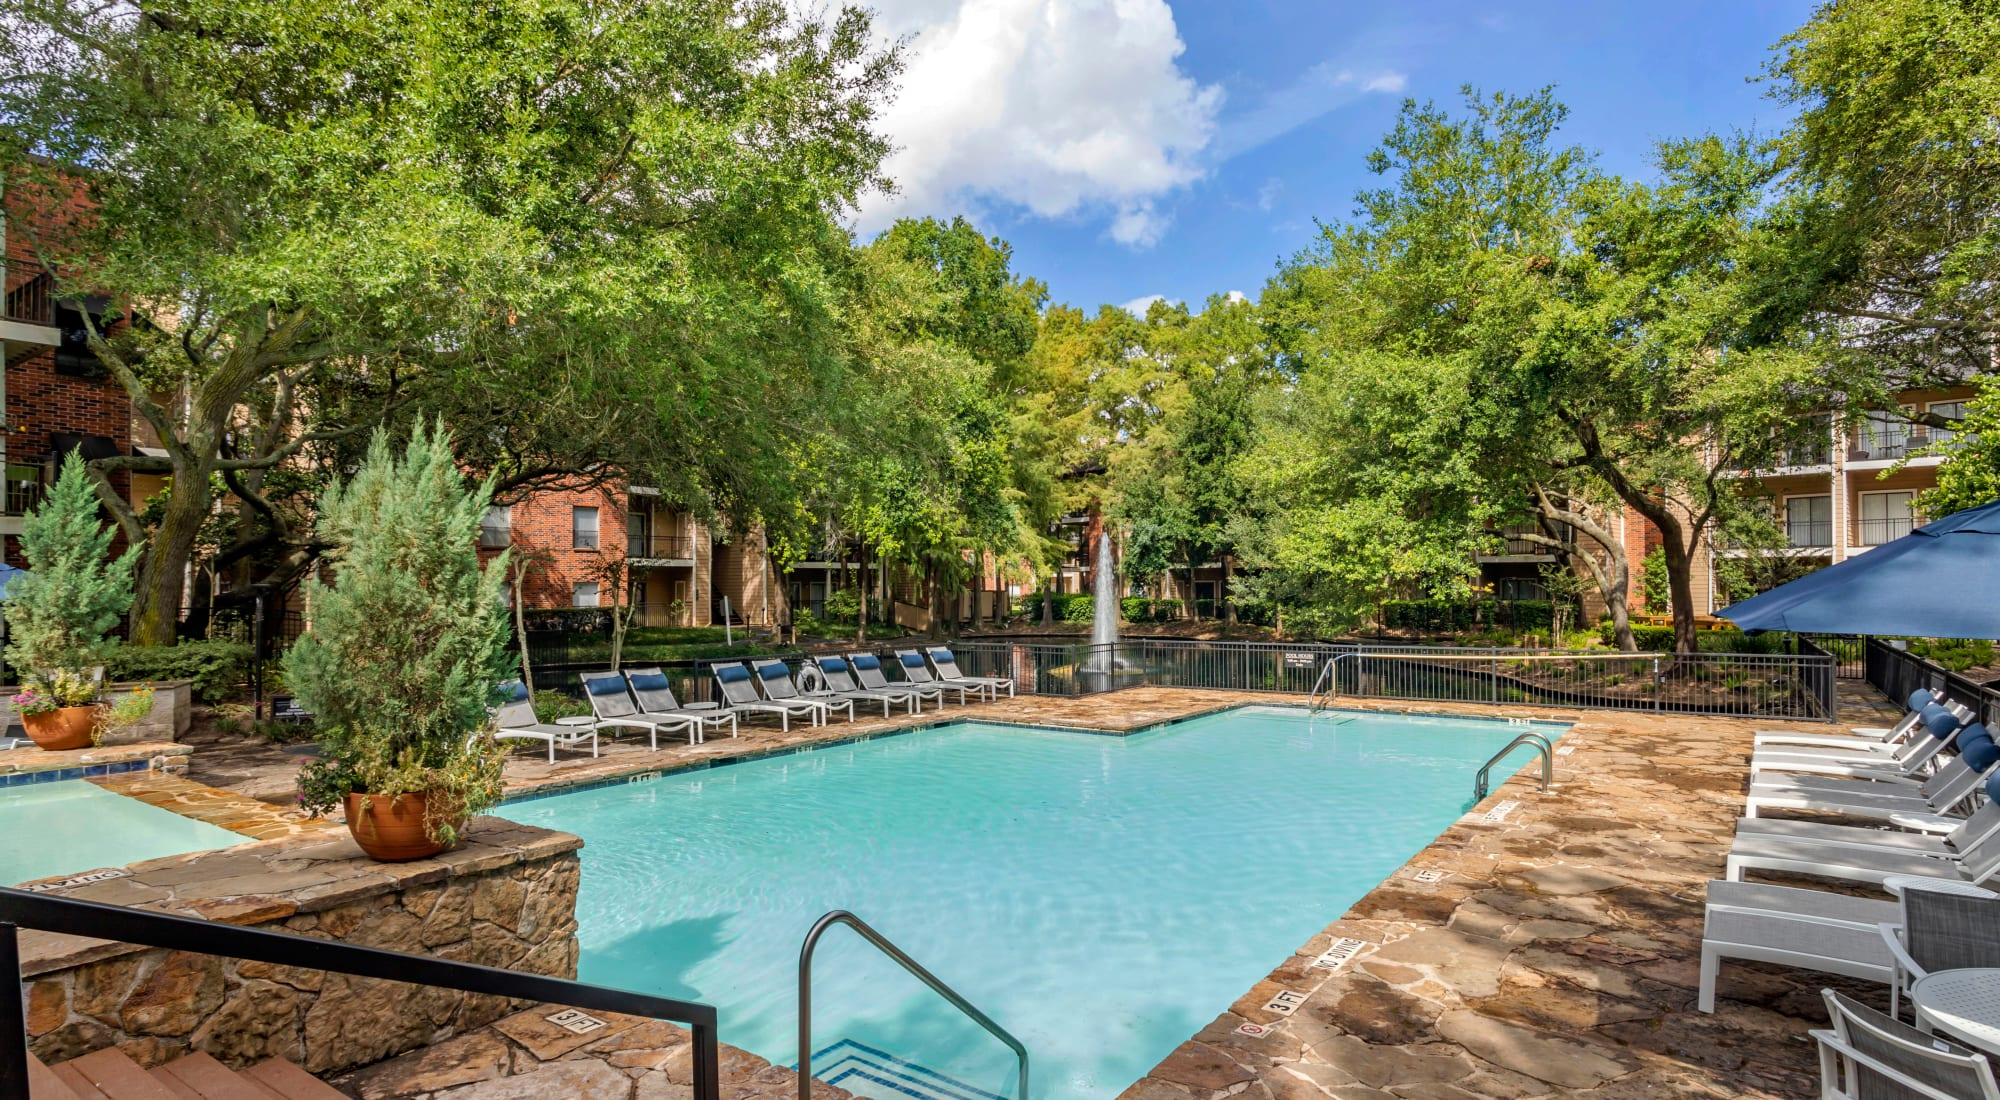 Amenities at Foundations at River Crest & Lions Head in Sugar Land, Texas